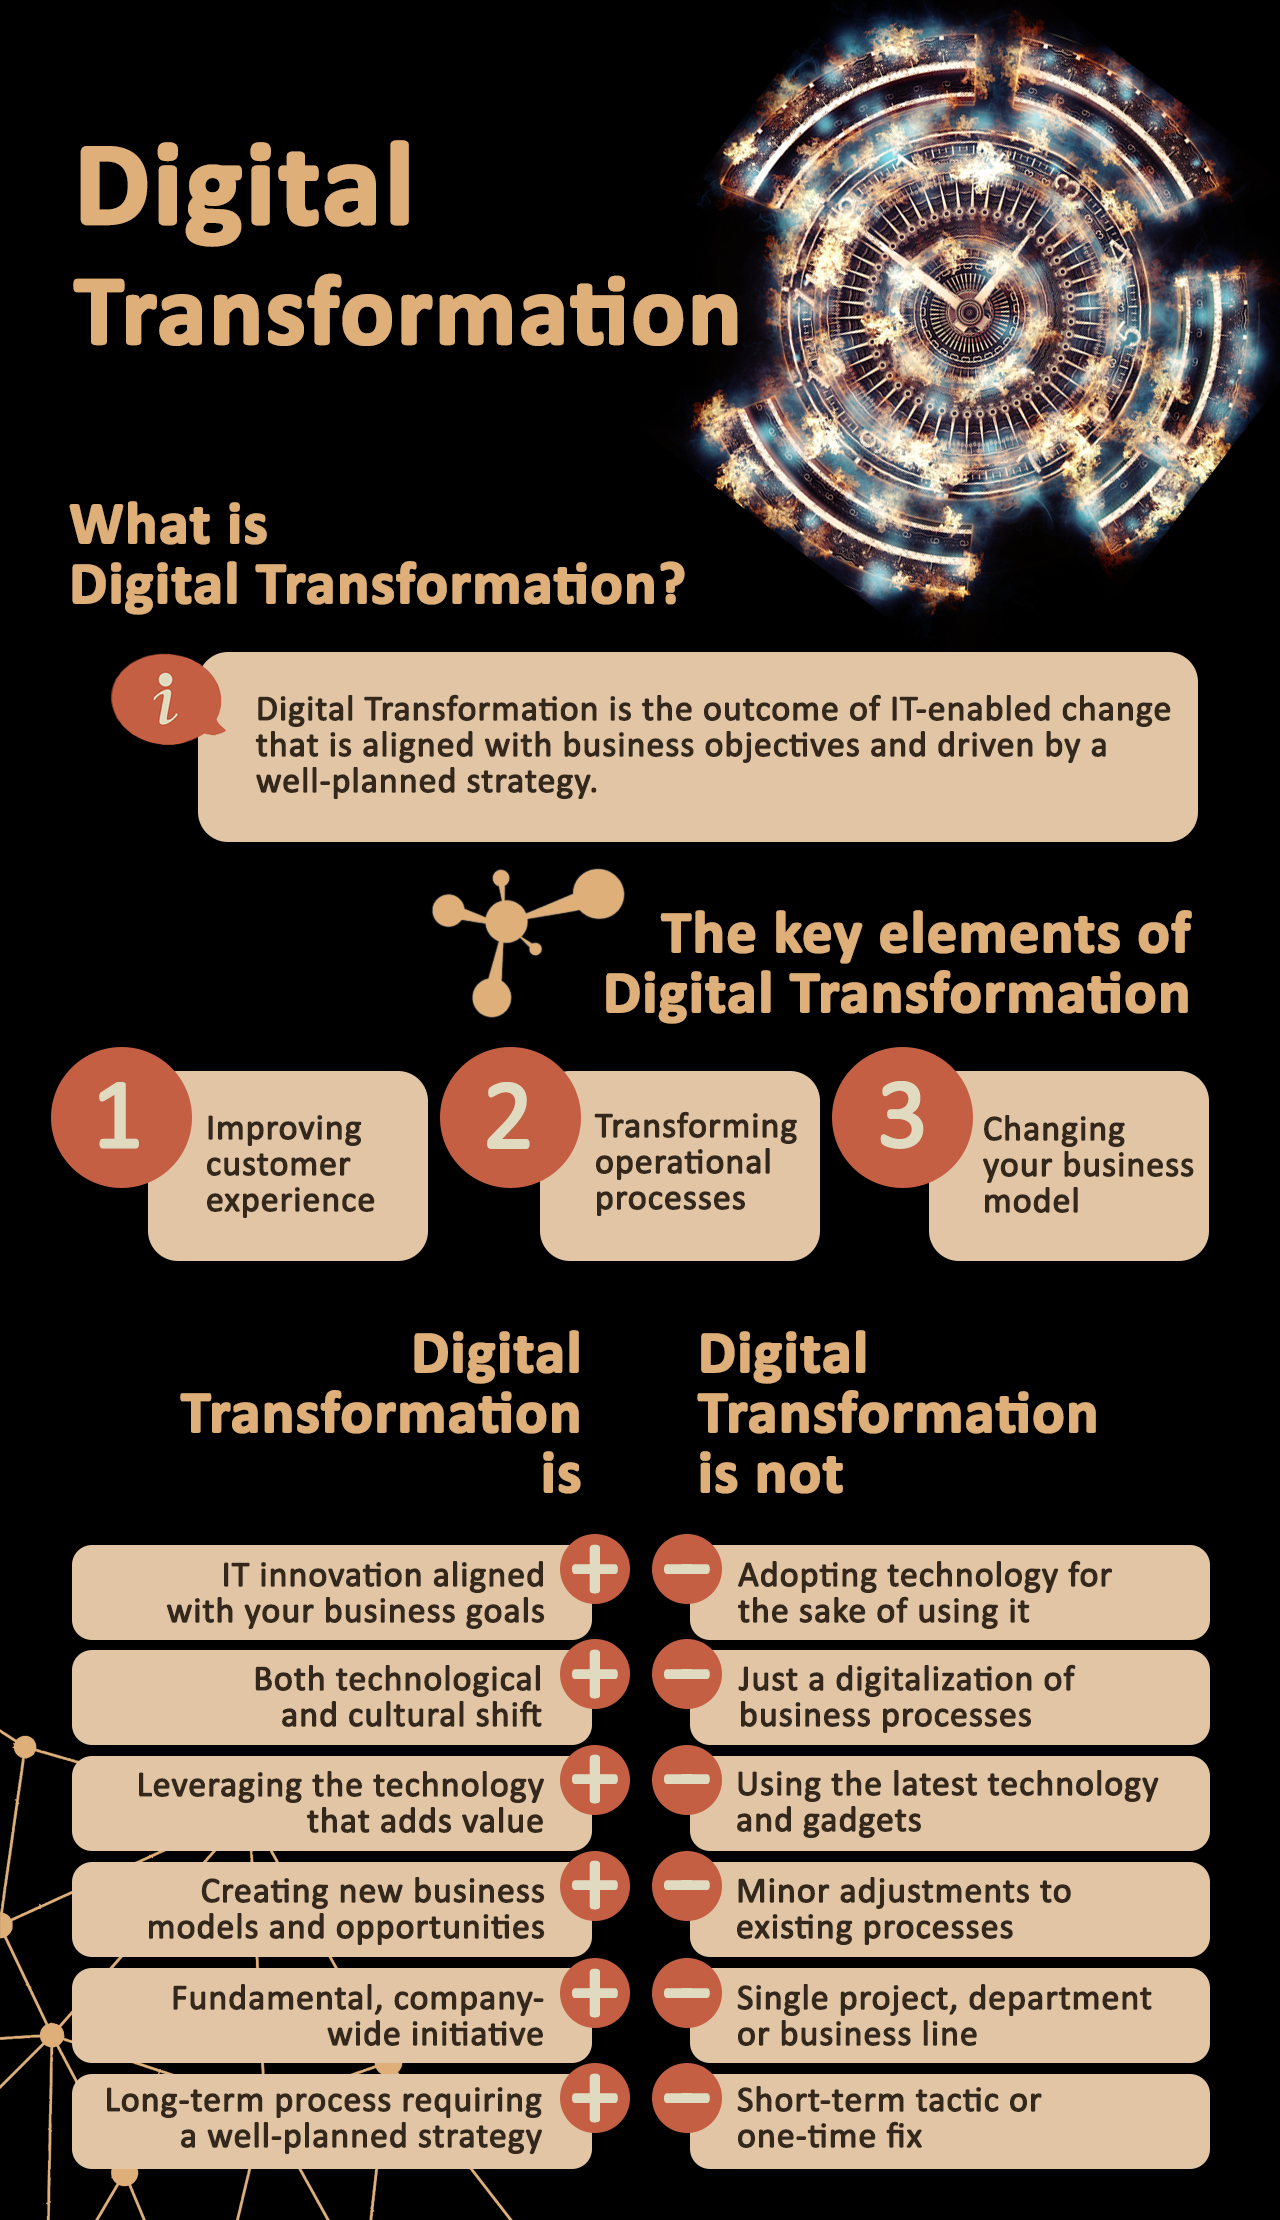 Digital Transformation: What Is It? (Infographic)